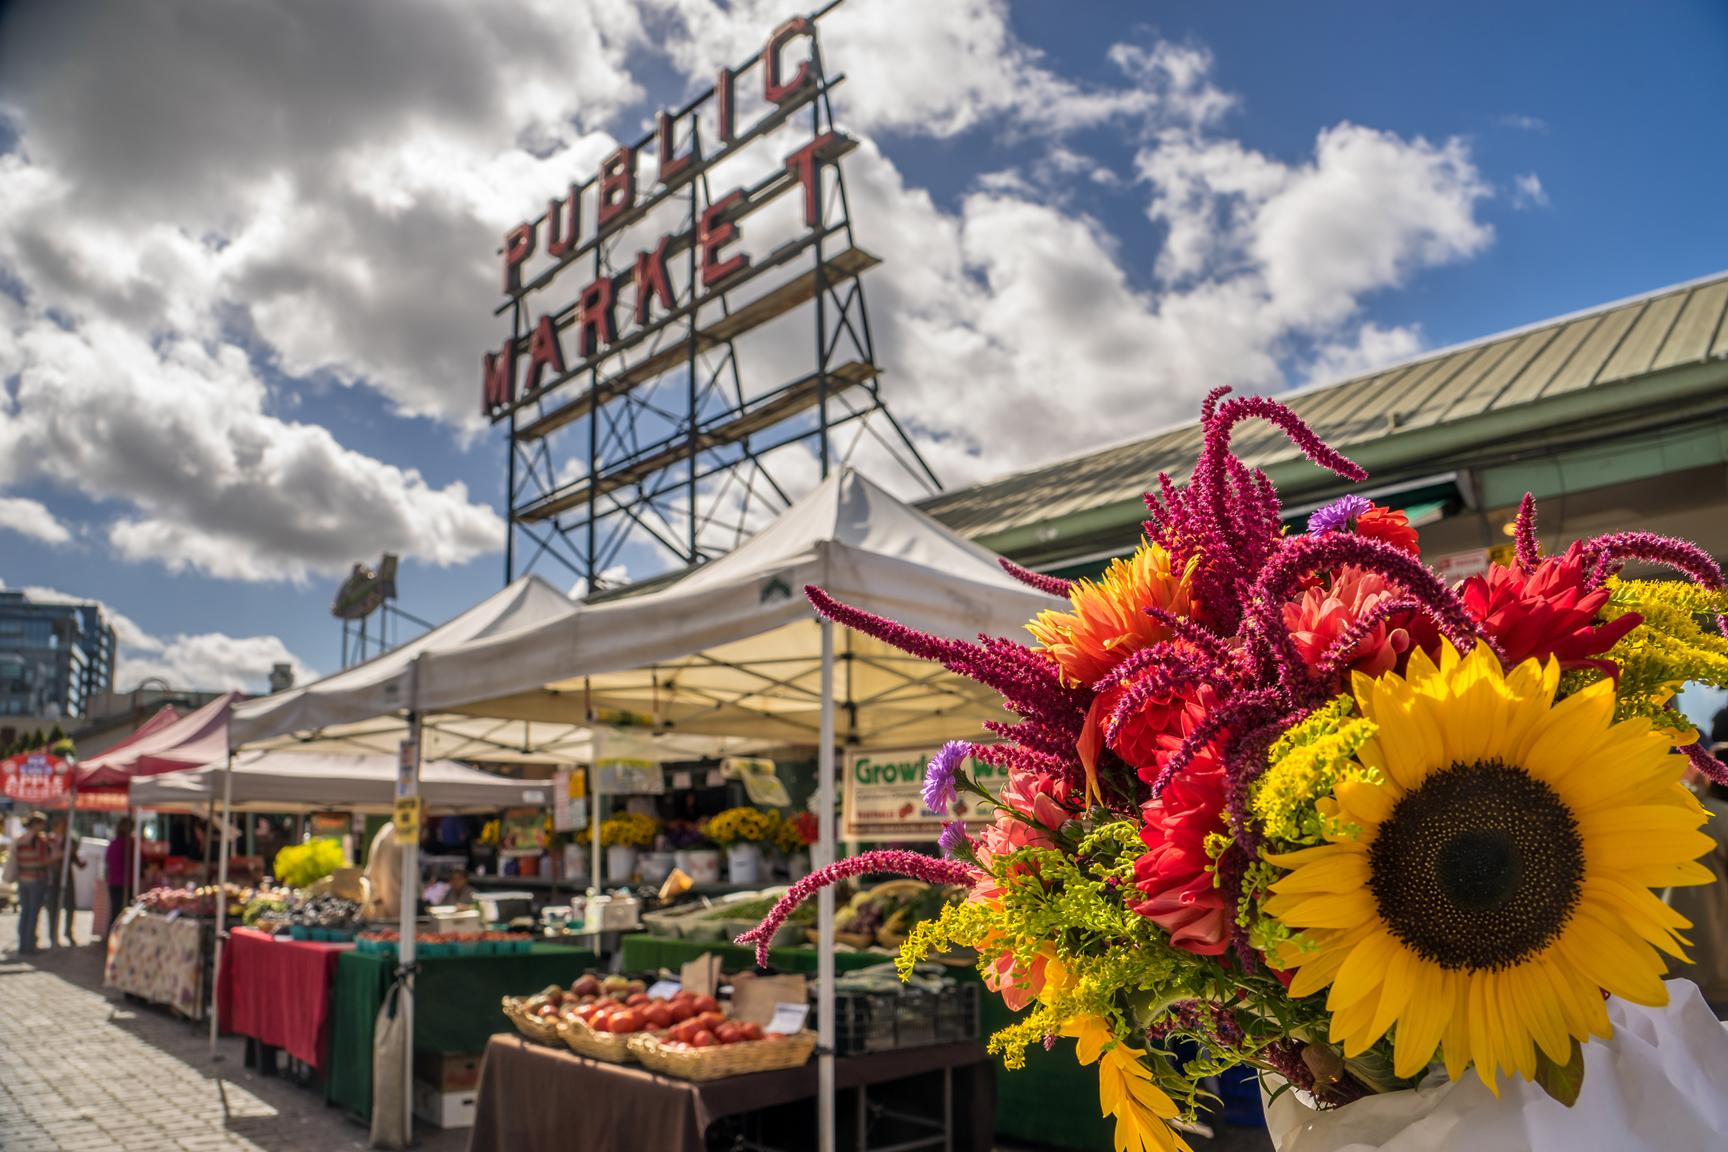 The Pike Place Market, one of the oldest farmers markets in the U.S. (Photo courtesy of Visit Seattle/Alabastro Photography)